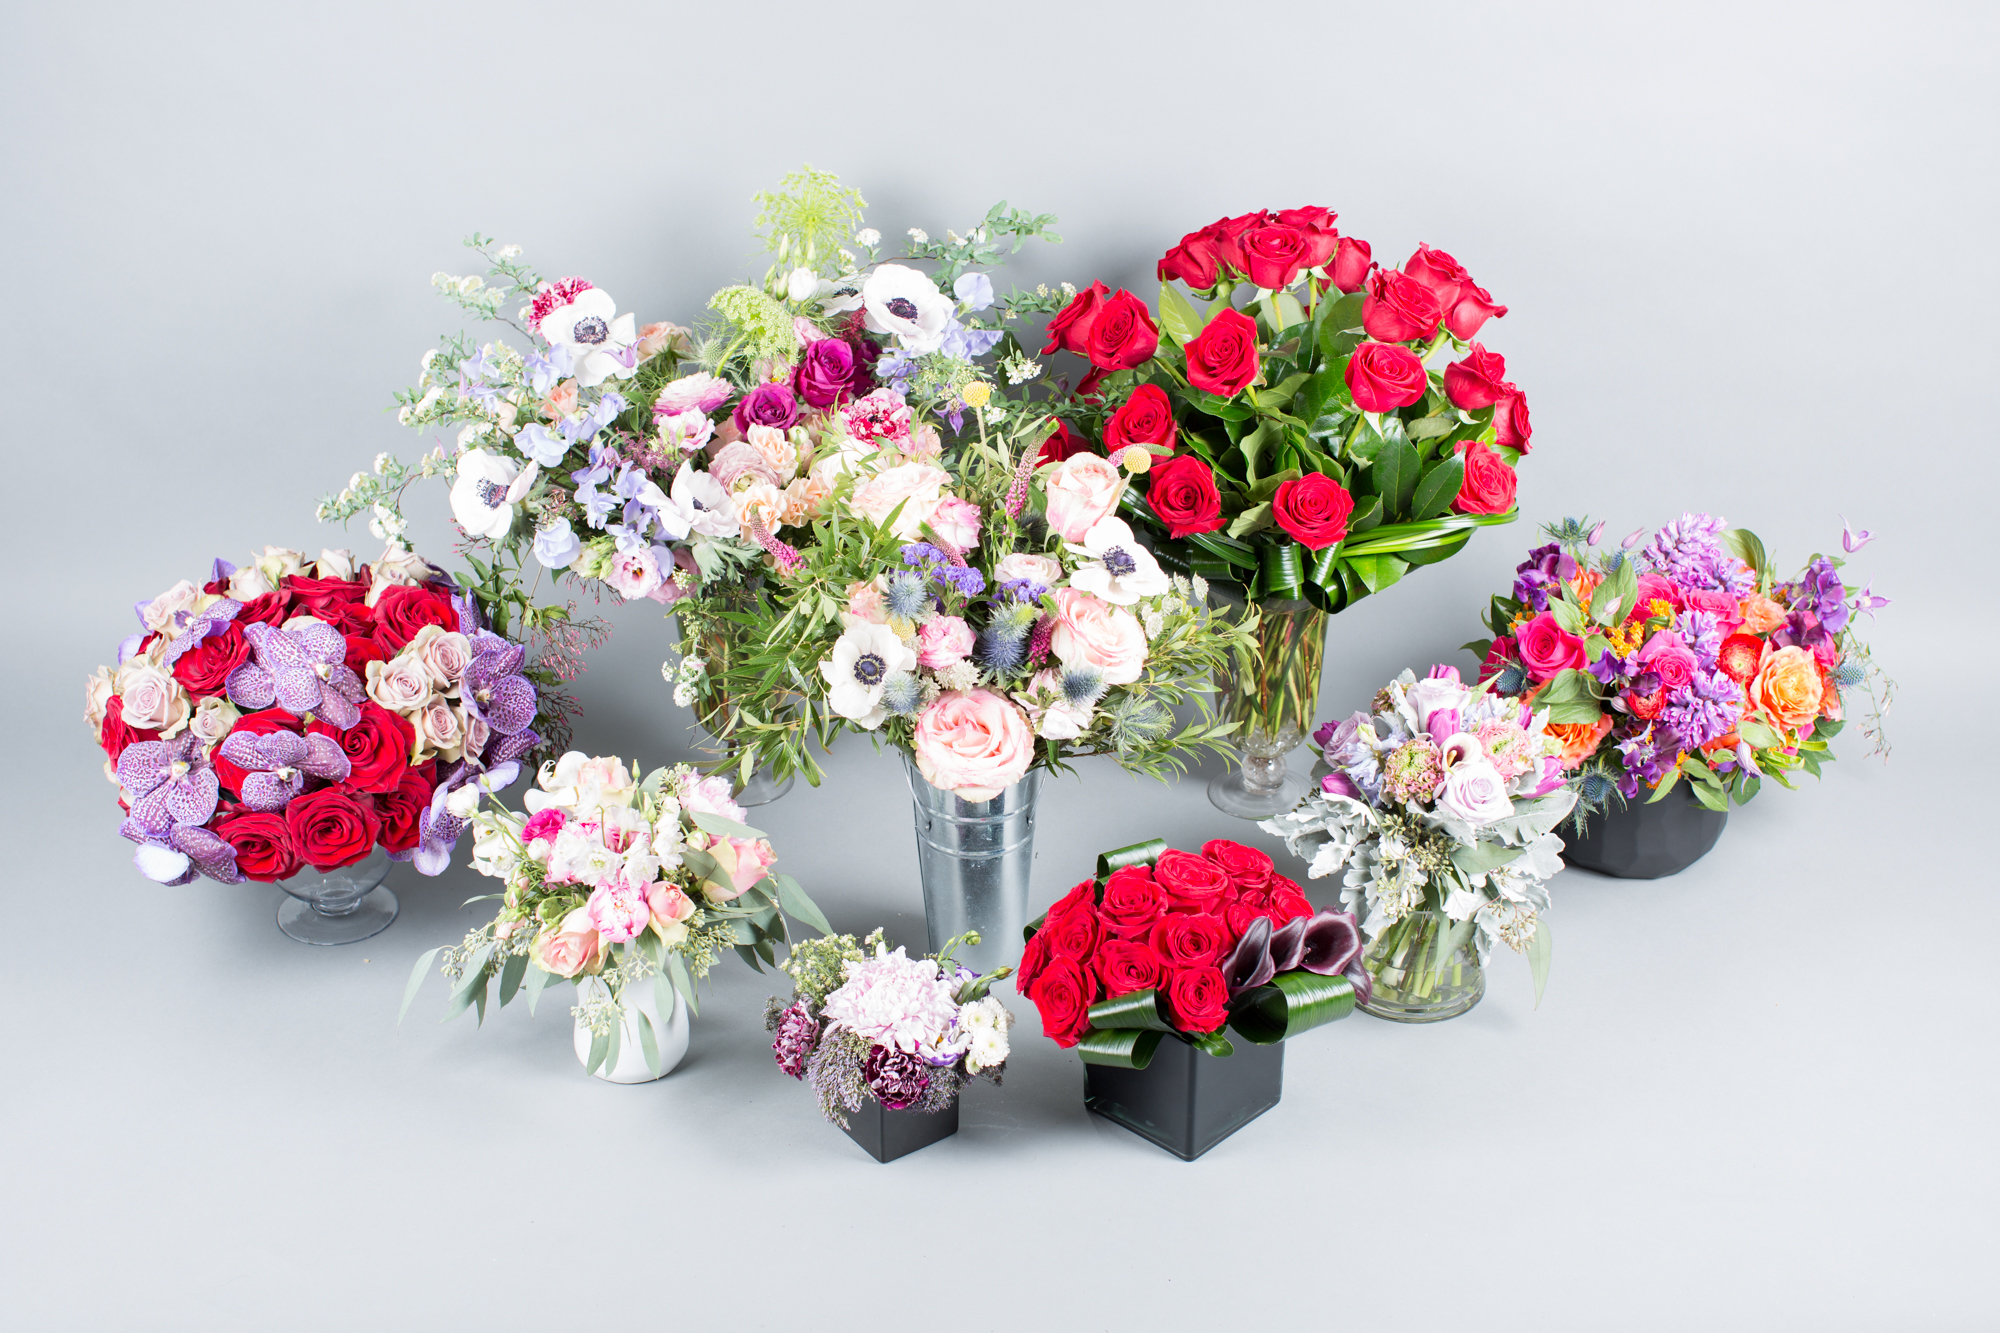 valentines day bouquets - HD1600×900